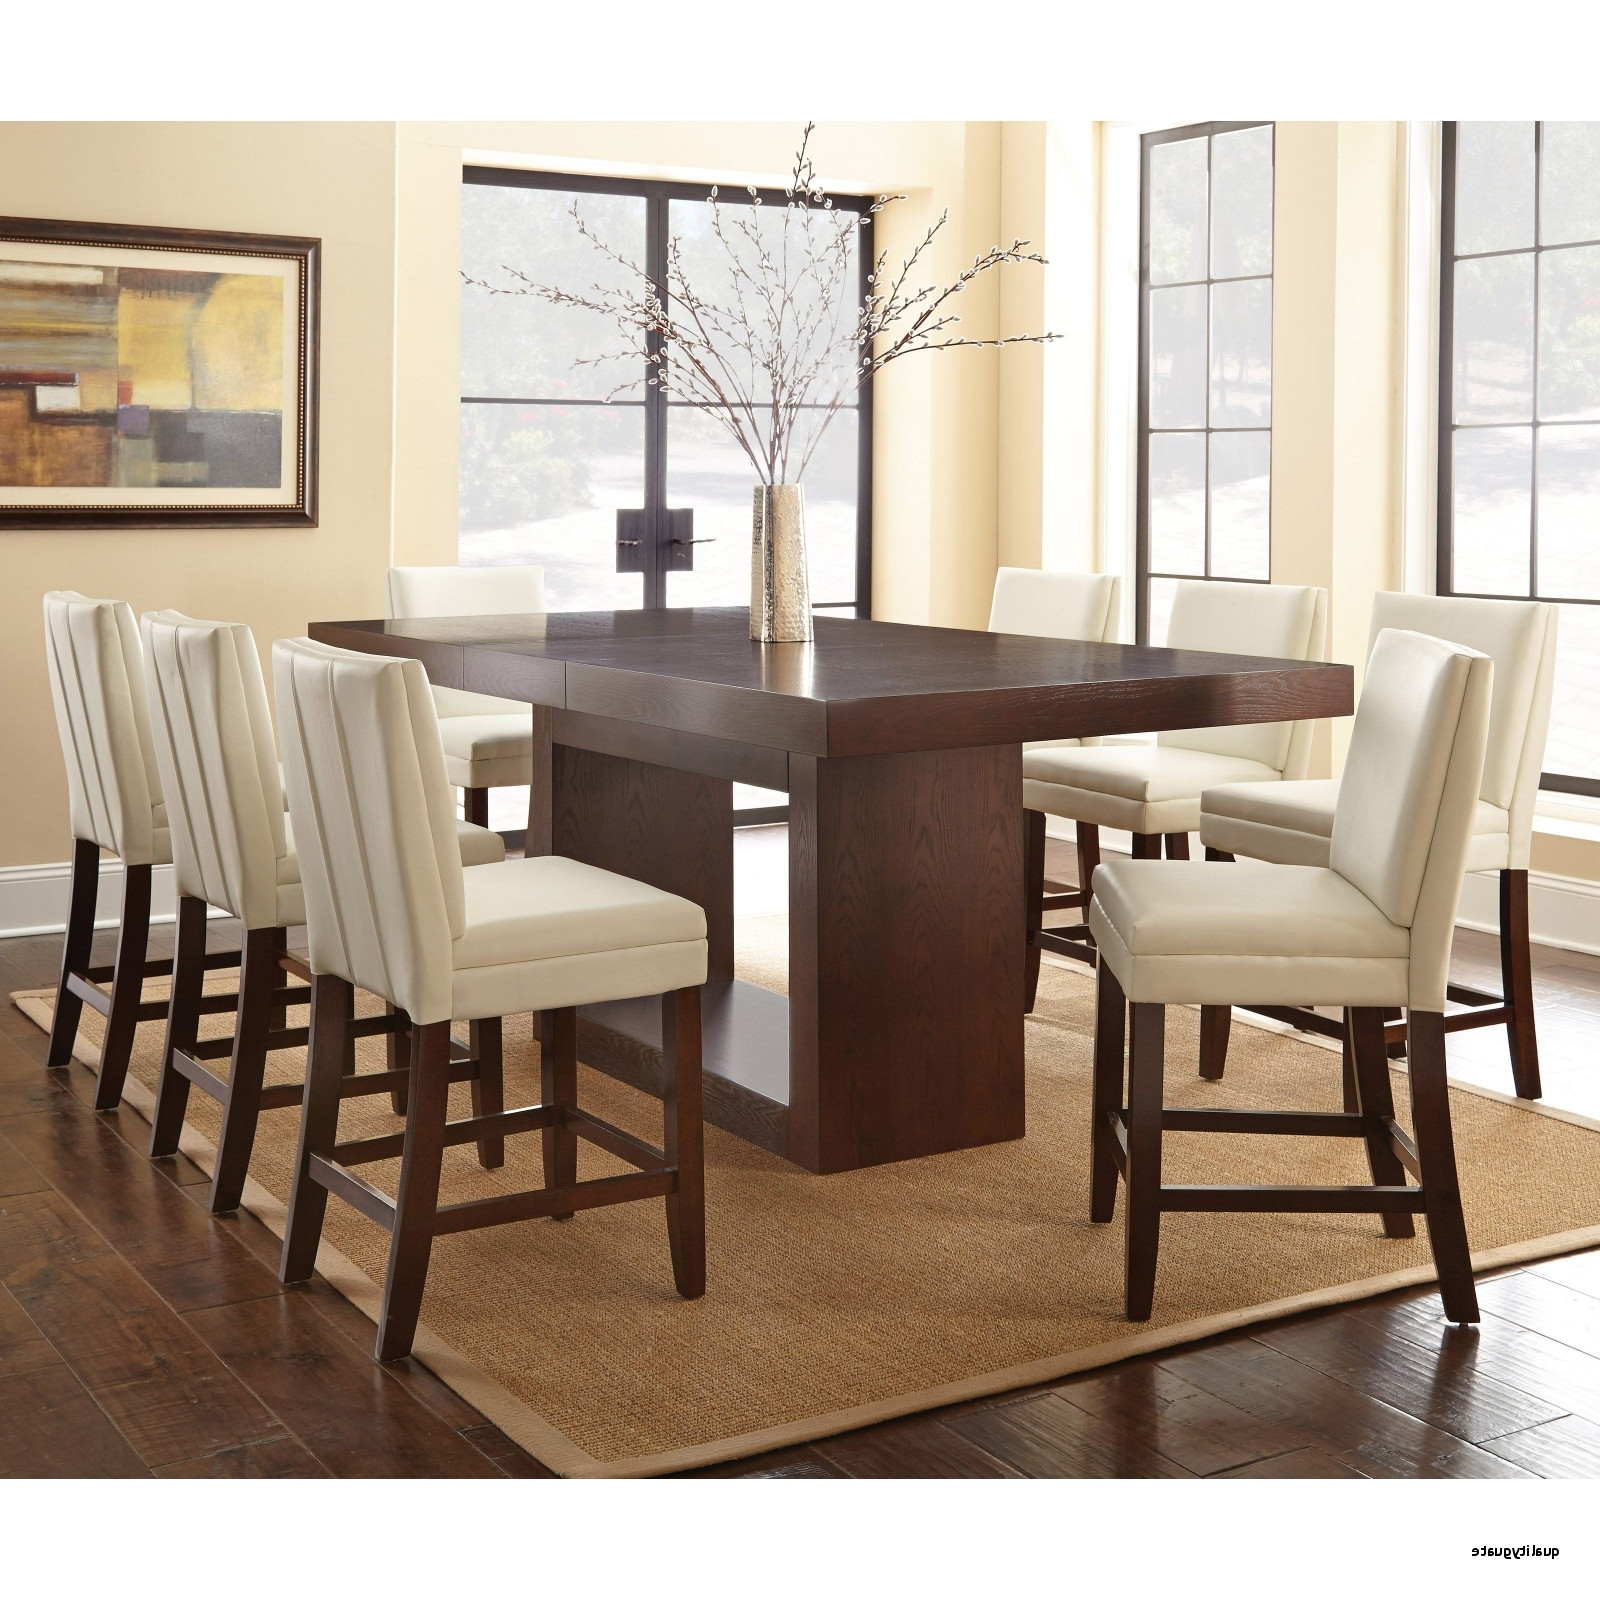 Recent Adorable Cream Dining Room Set Or 20 Modern High Gloss Dining Table With High Gloss Cream Dining Tables (View 25 of 25)